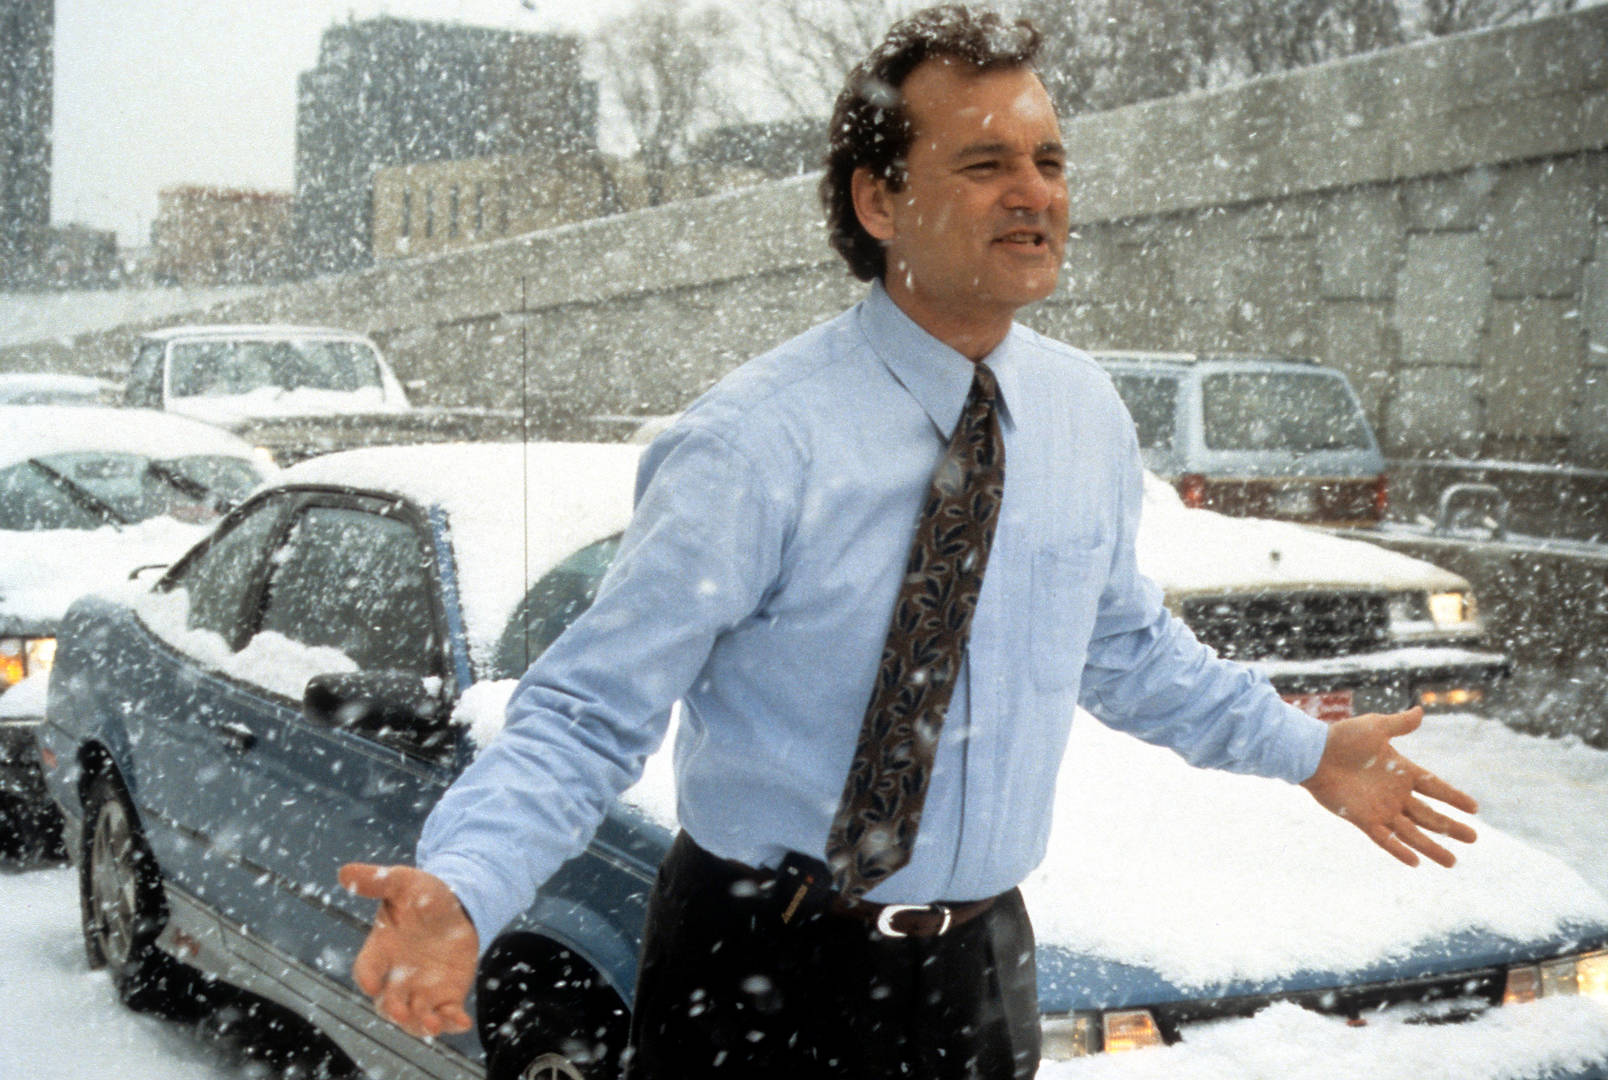 Bill Murray Reprises 'Groundhog Day' Role in Jeep Ad